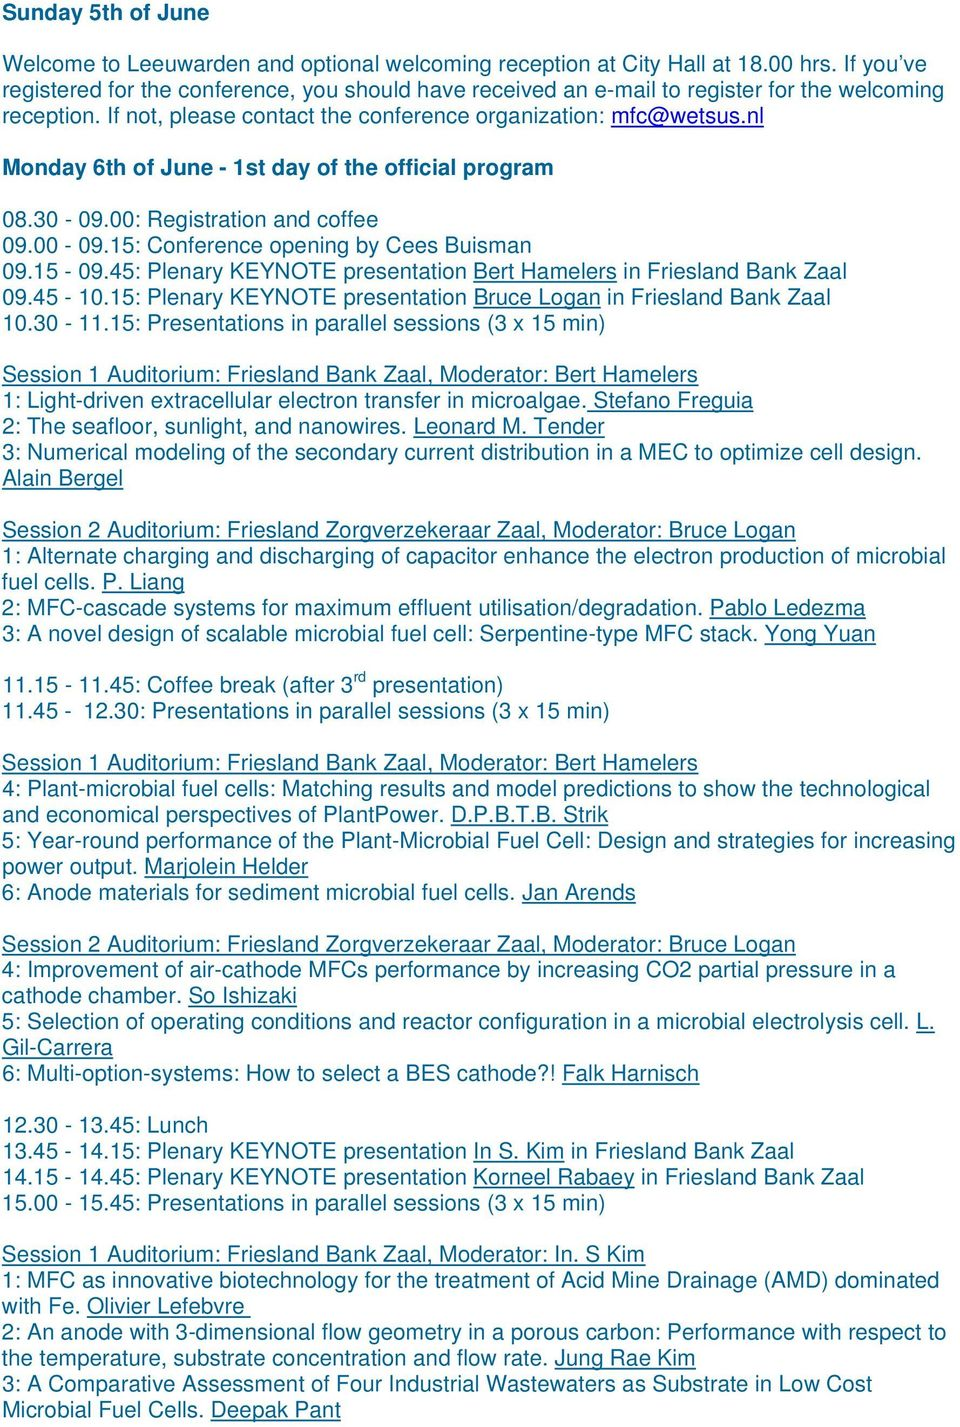 nl Monday 6th of June - 1st day of the official program 08.30-09.00: Registration and coffee 09.00-09.15: Conference opening by Cees Buisman 09.15-09.